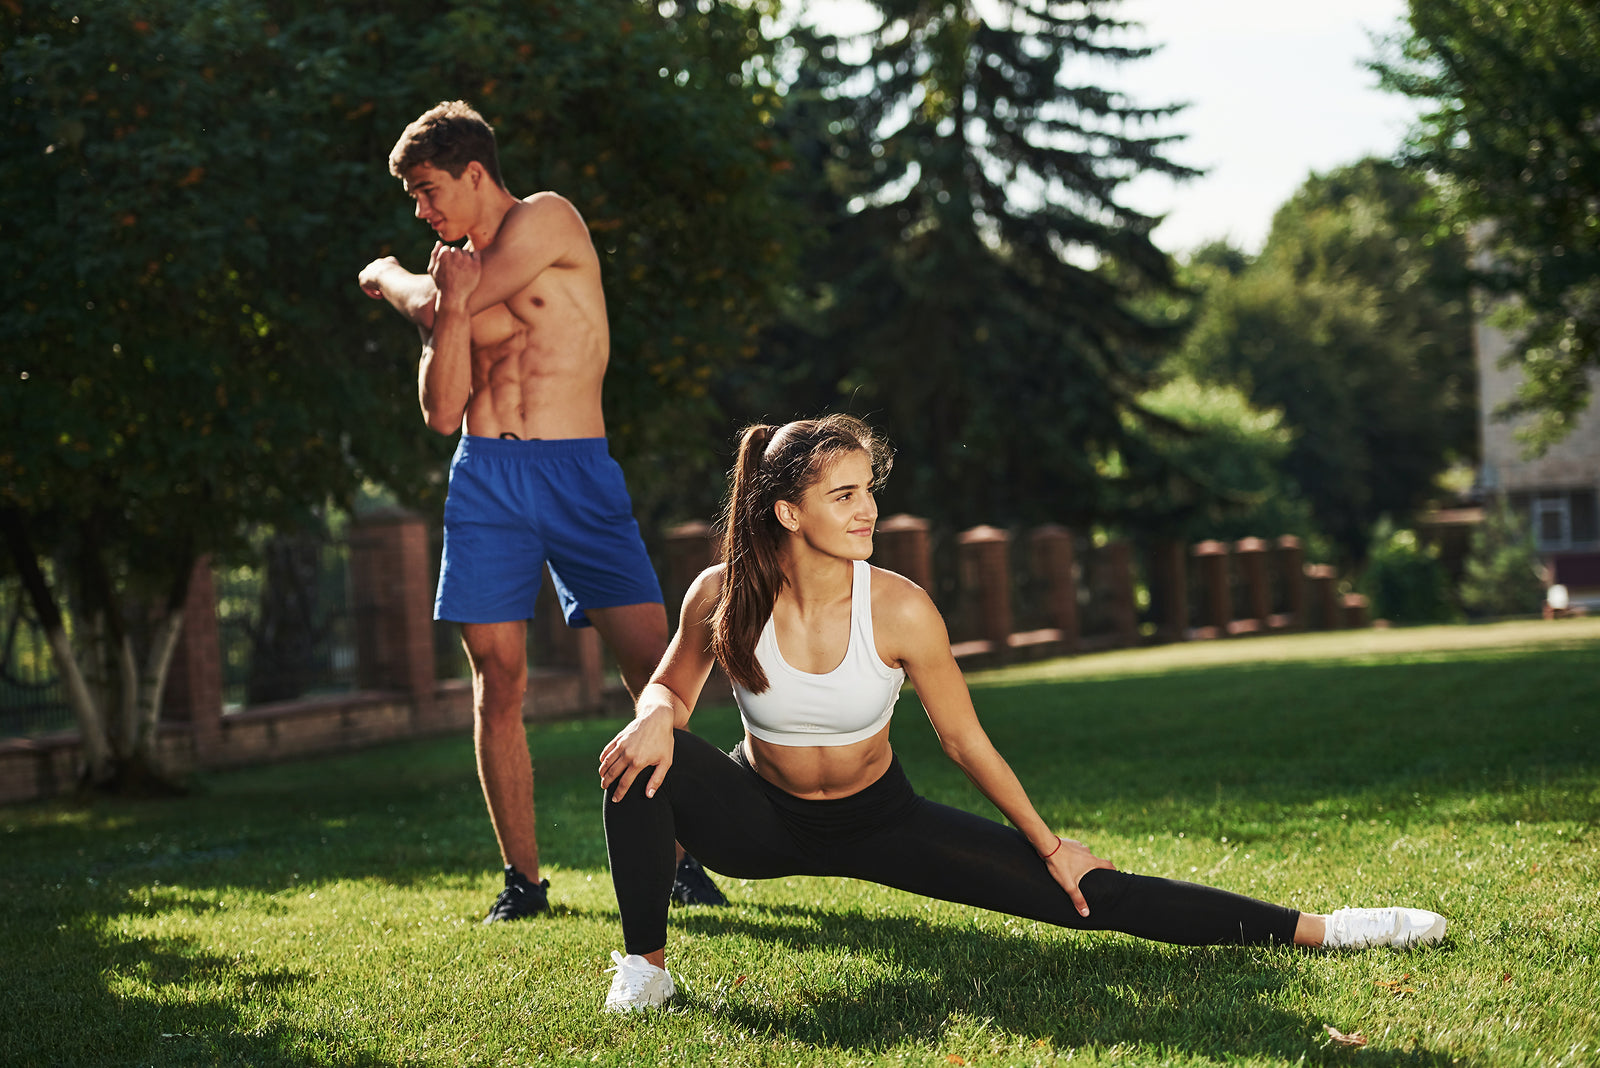 A man and woman stretching off showing abs